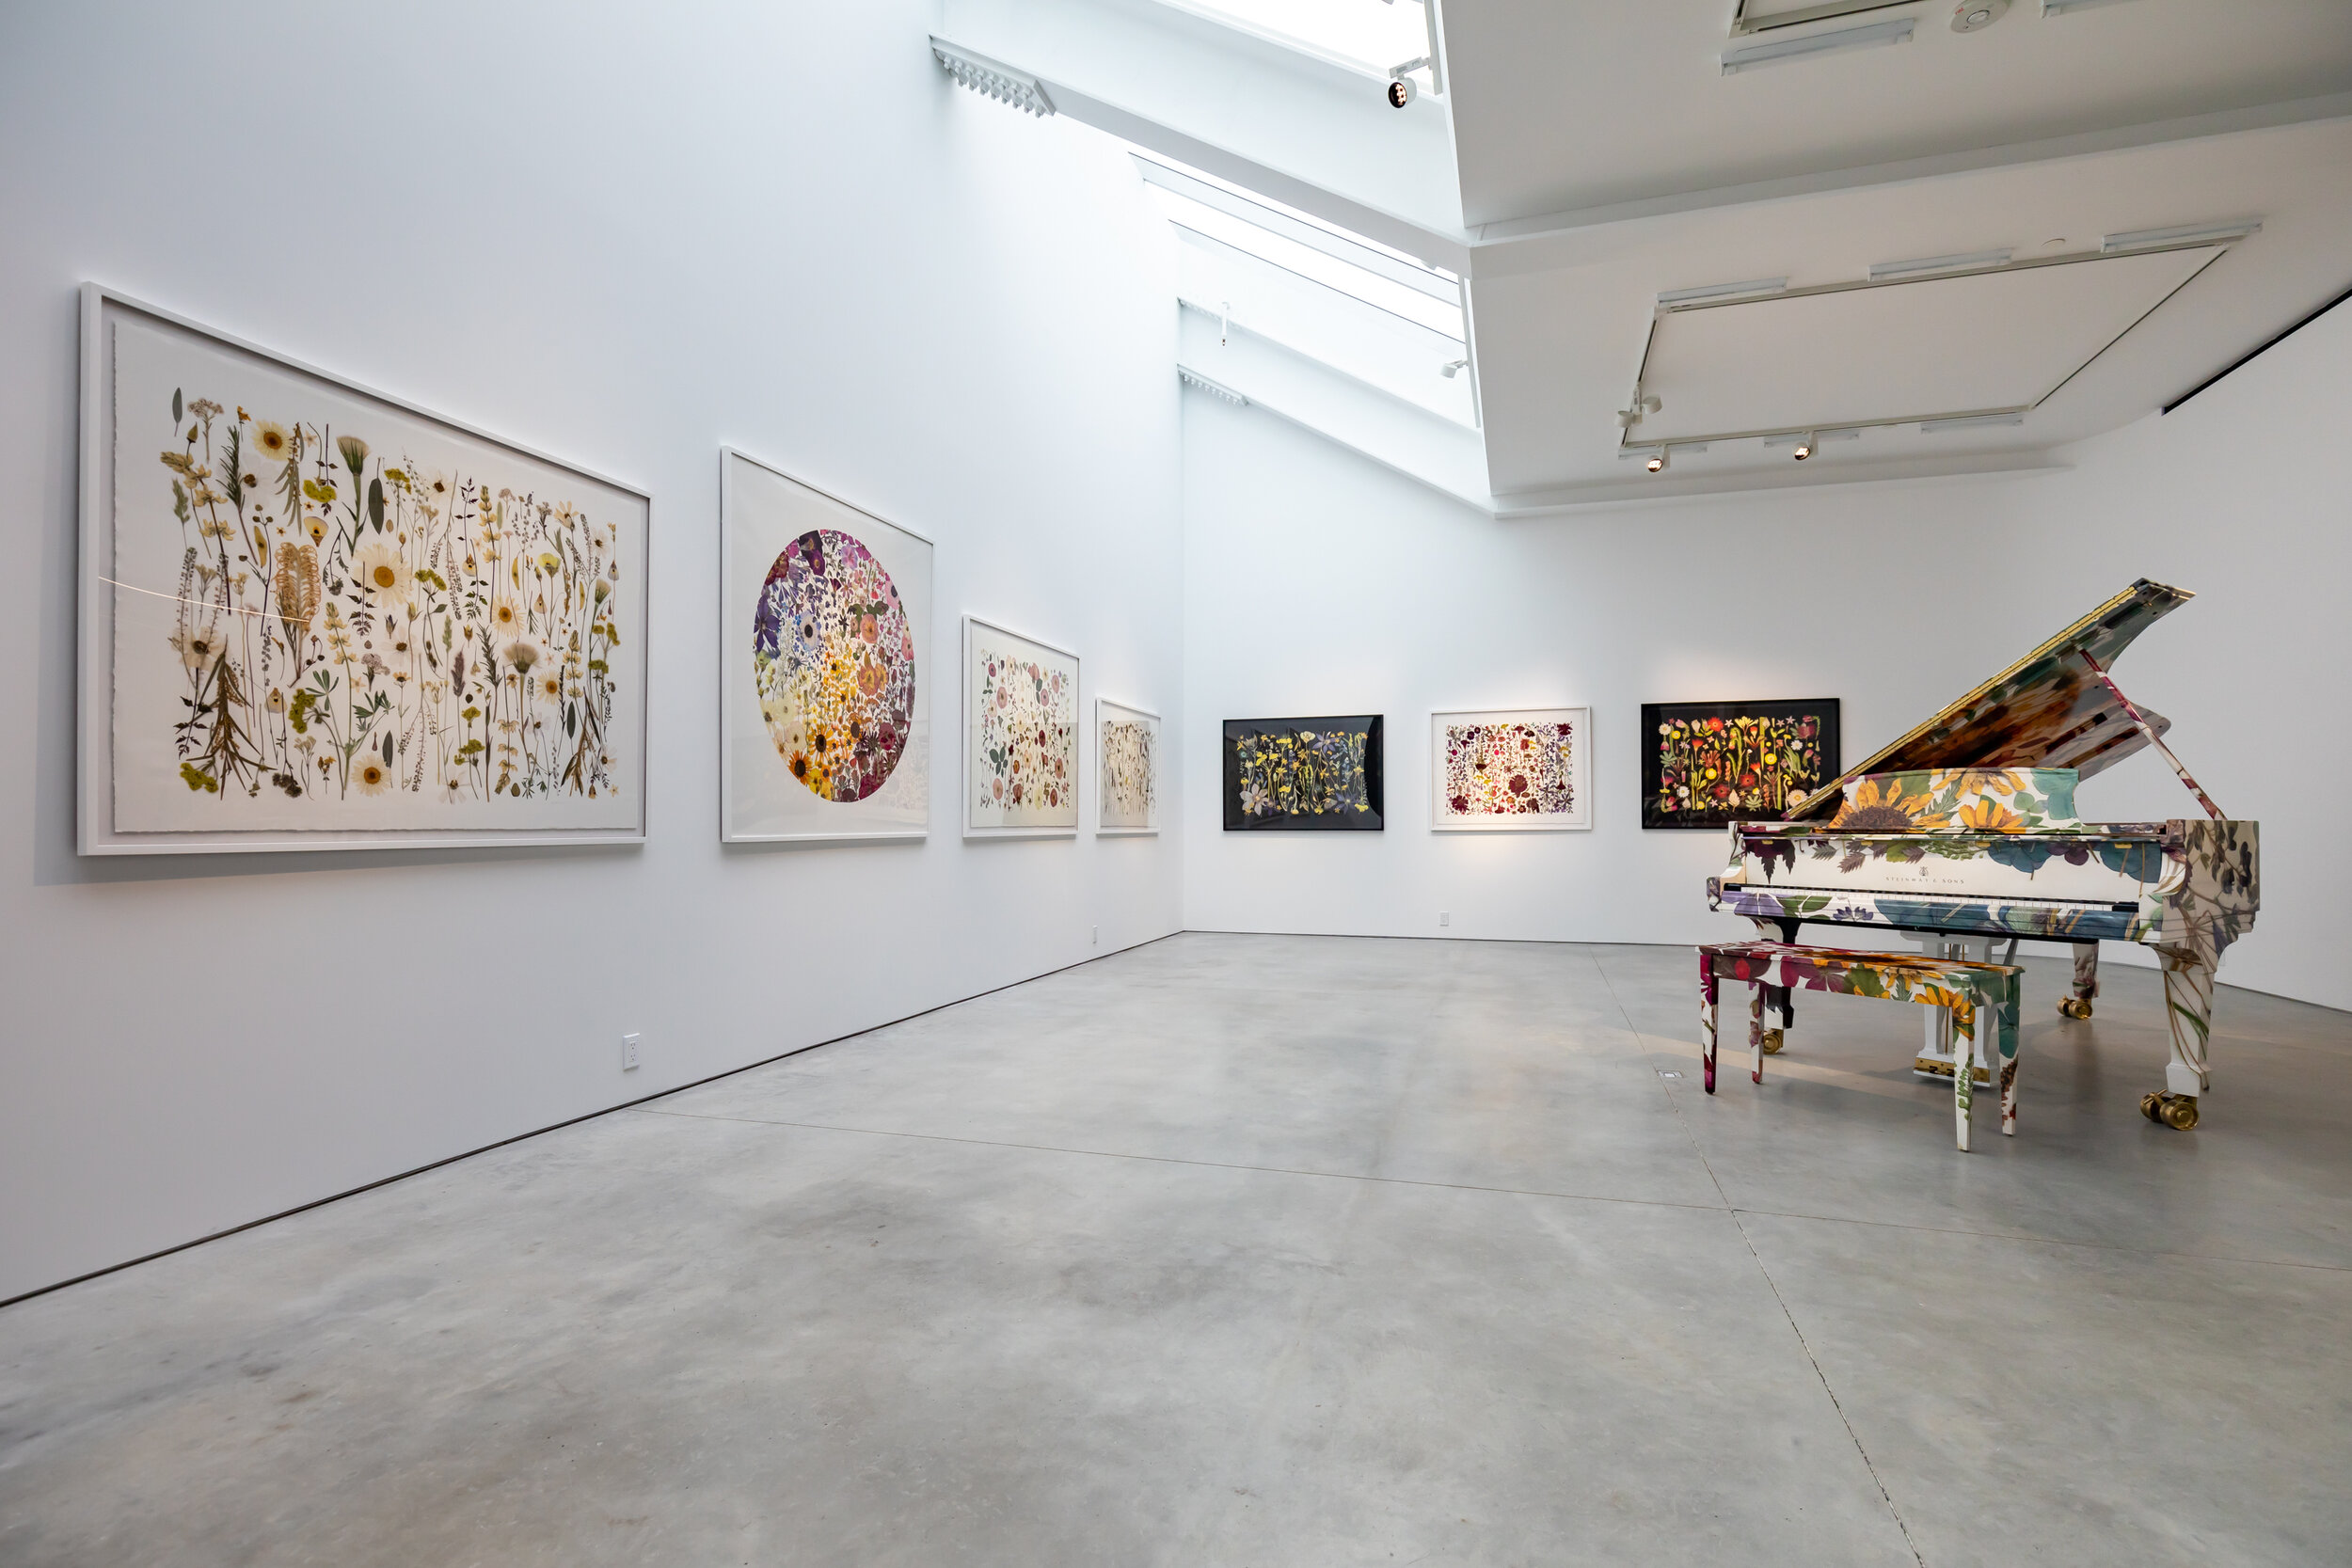 Installation shot of large botanical floral prints and a botanical wrapped piano in a gallery